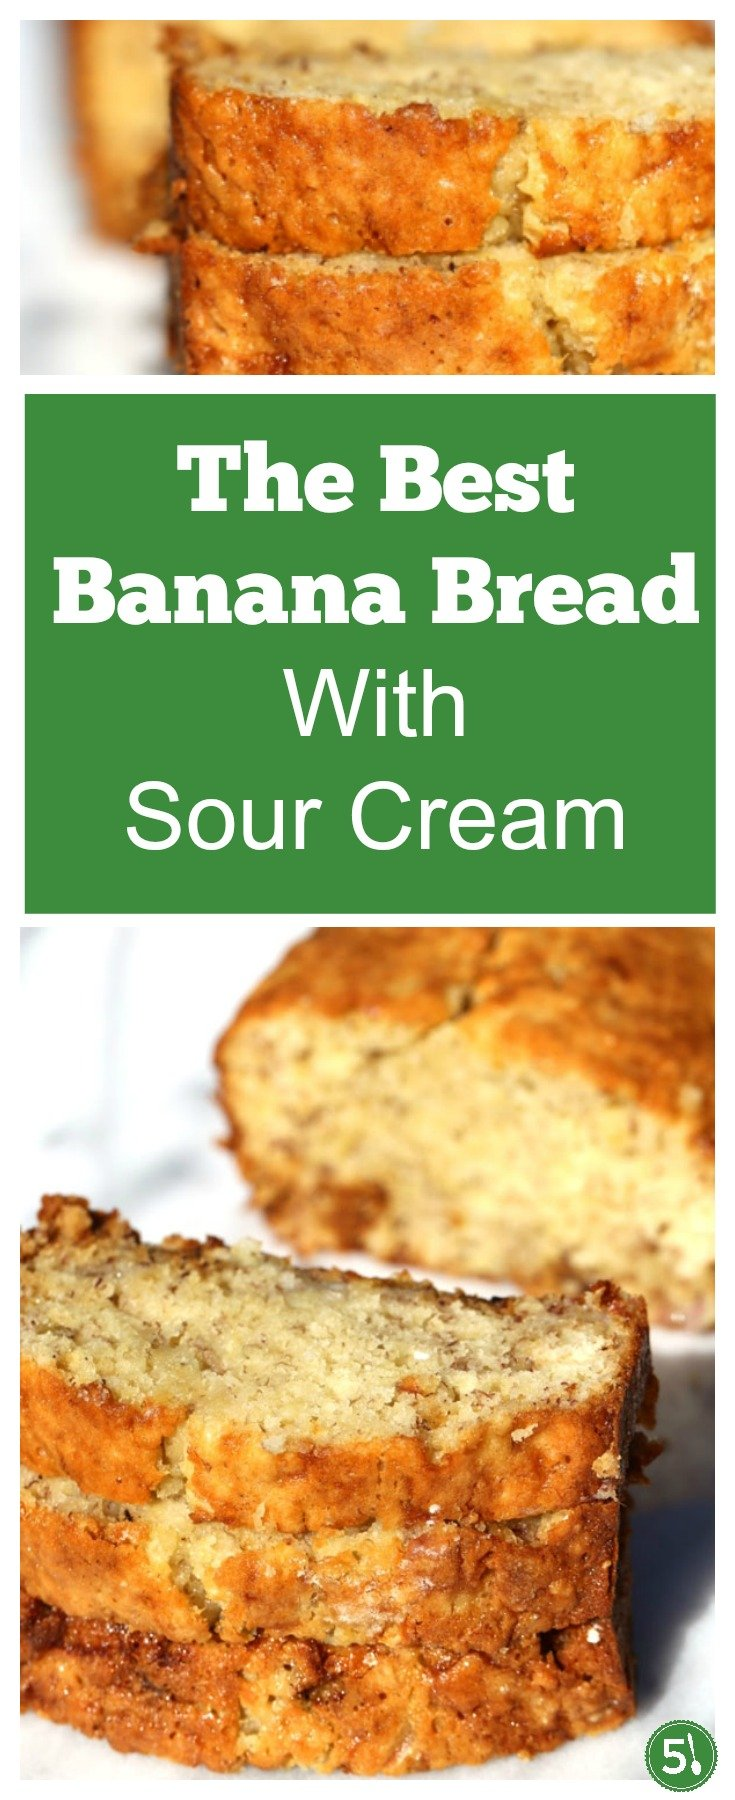 This super moist banana bread with sour cream recipe is so delicious.  The texture of this bread is soft, with a slightly crispy top, and has been voted the best banana bread by my family.